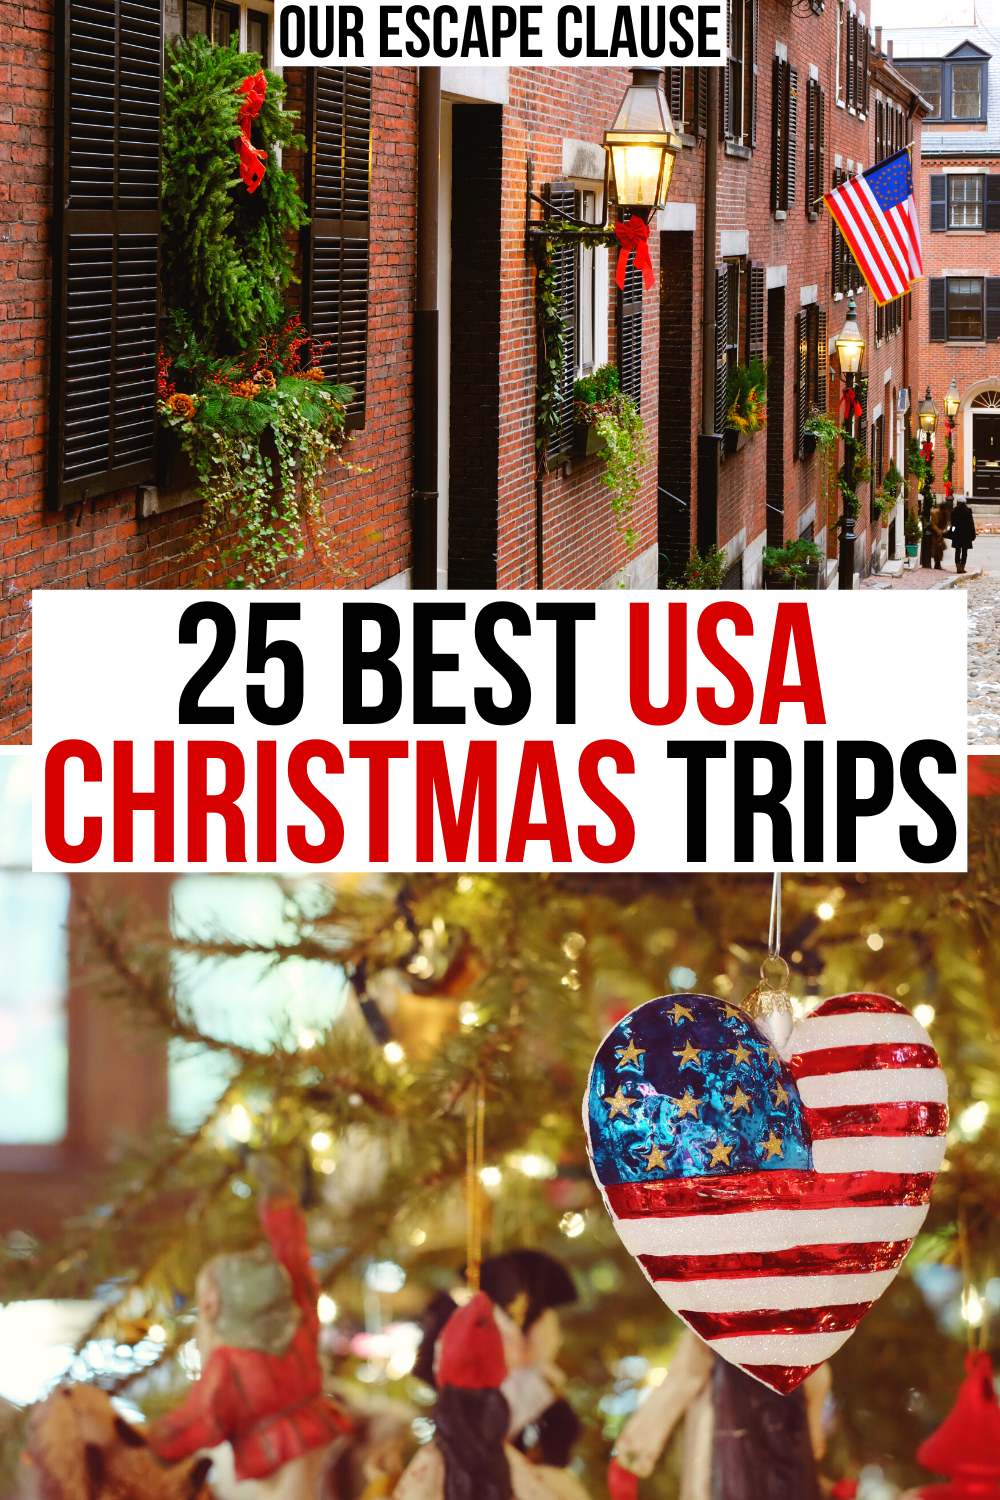 Best States To Travel Christmas 2020 25 Best Christmas Vacations in the USA   Our Escape Clause in 2020